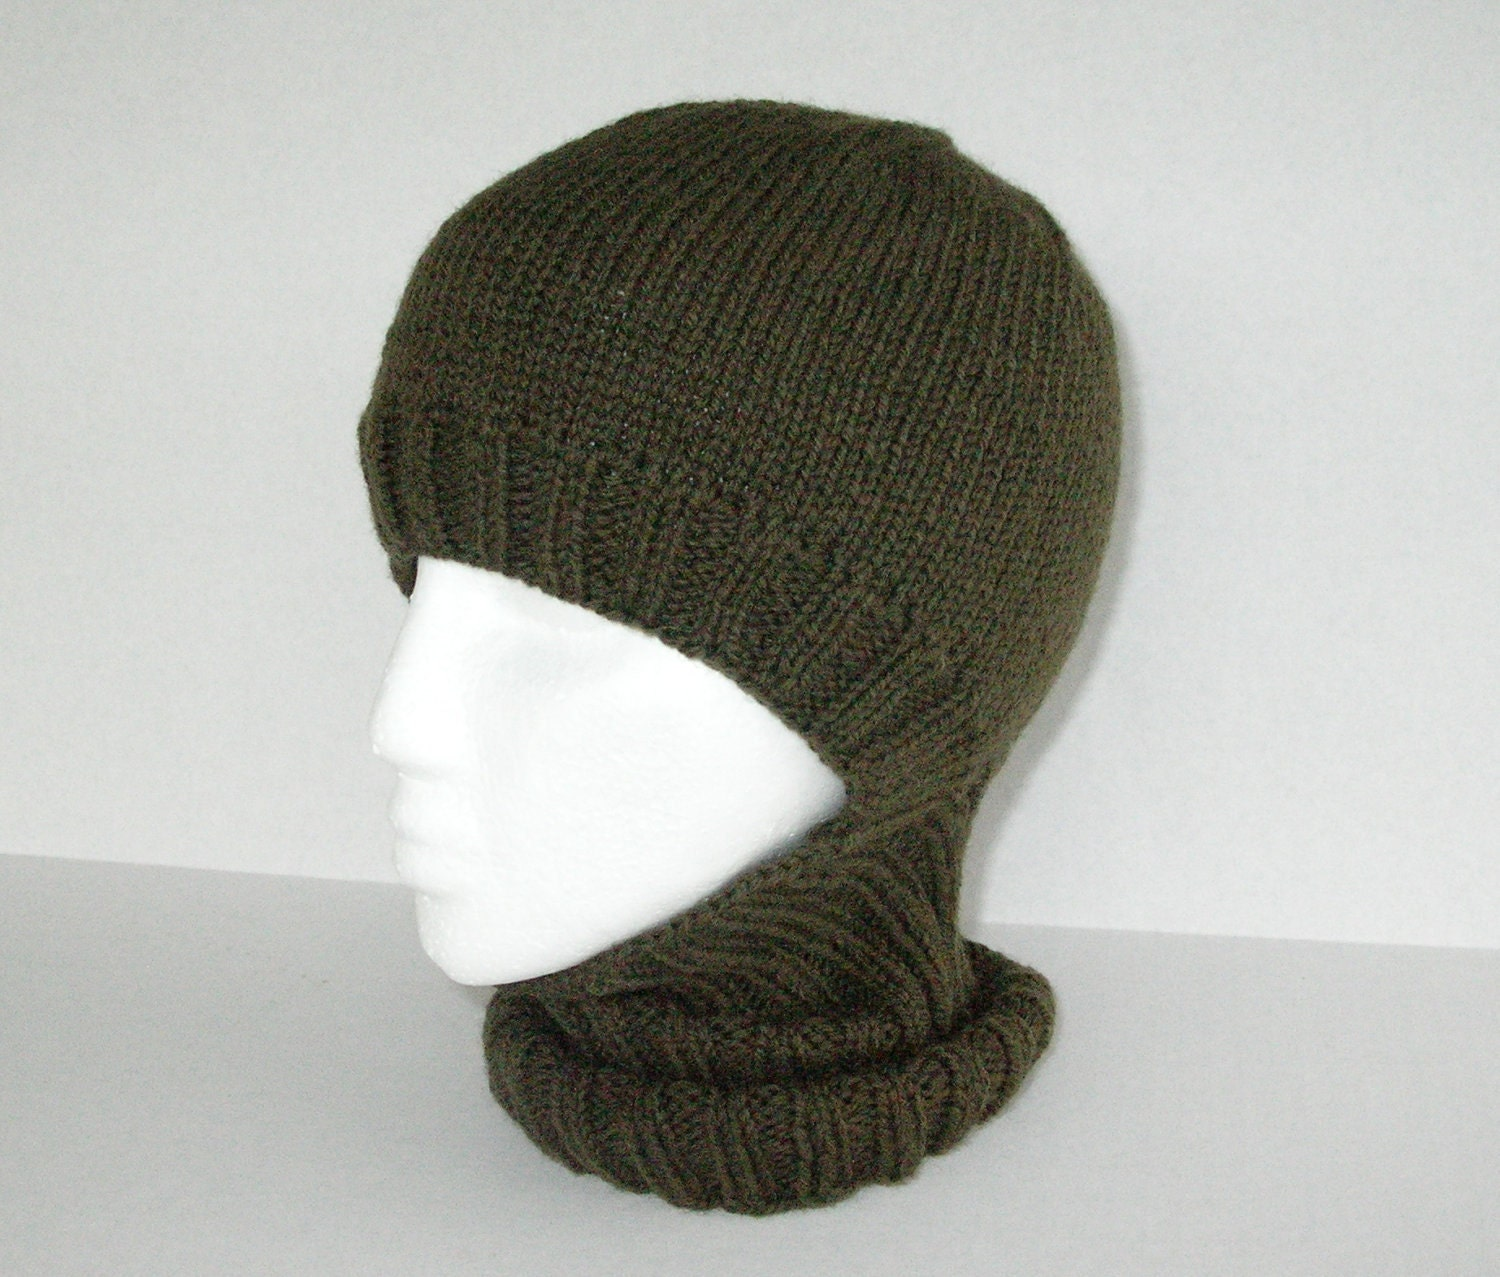 knit-face-mask-pattern Images - Frompo - 1